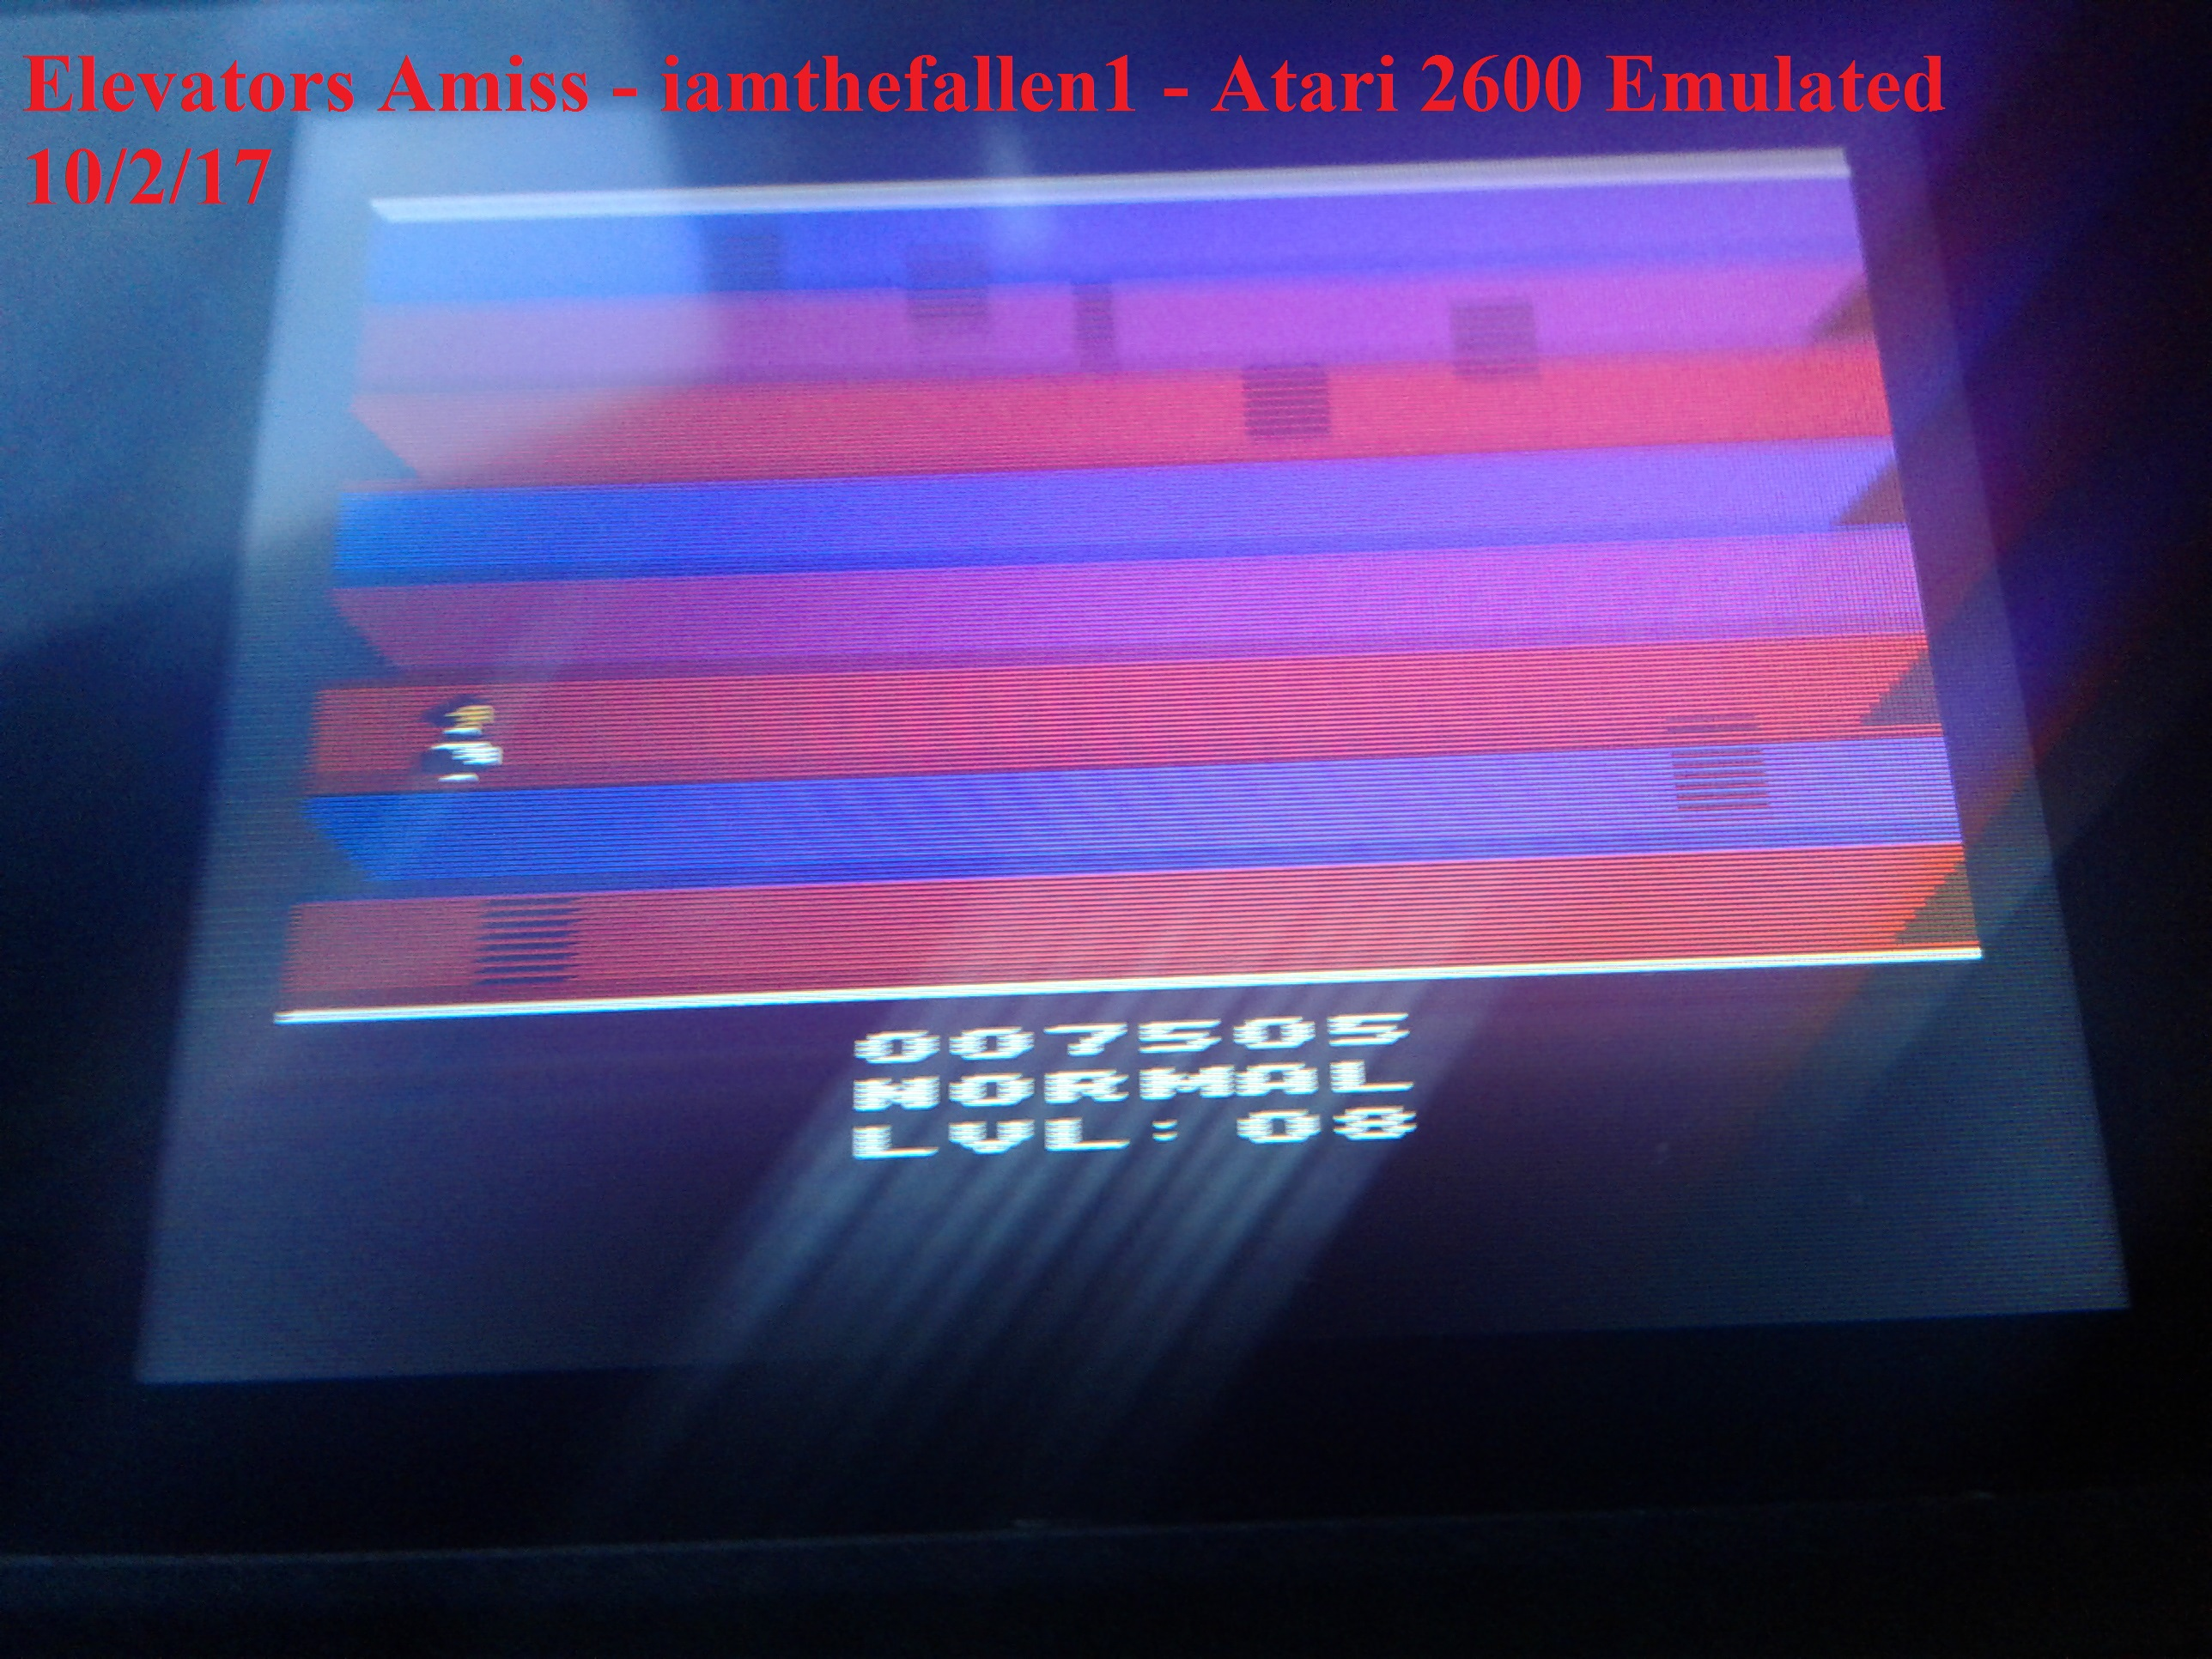 iamthefallen1: Elevators Amiss (Atari 2600 Emulated Novice/B Mode) 7,505 points on 2017-10-02 03:12:46